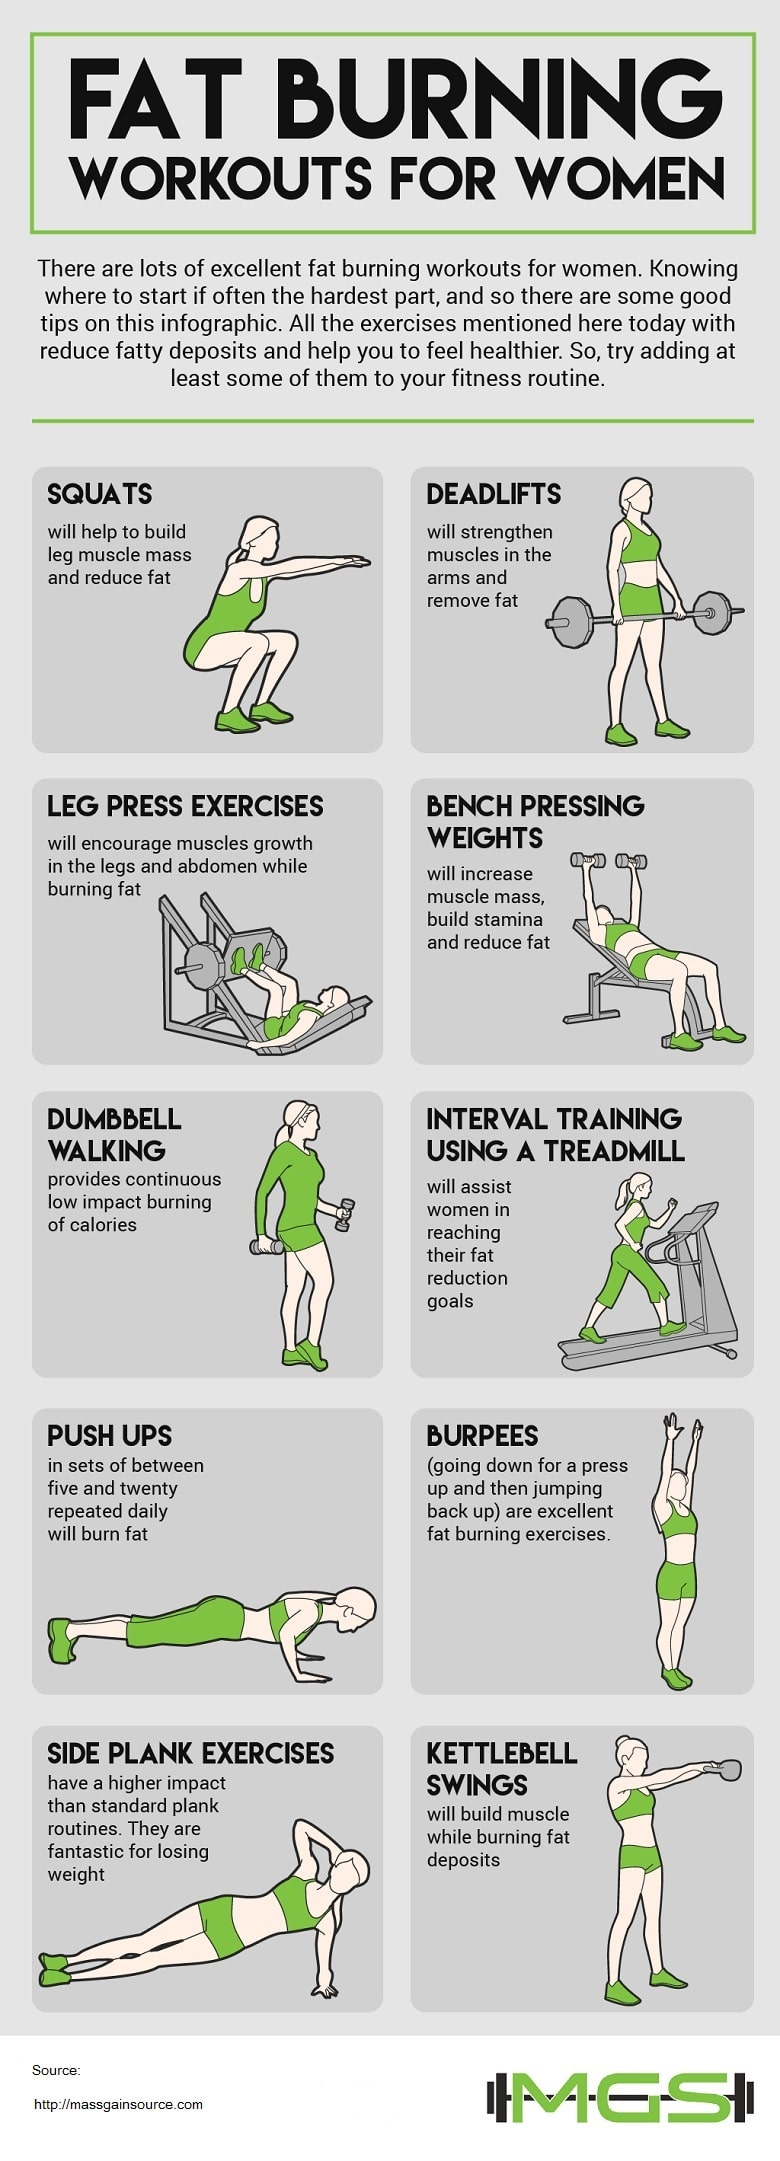 Fat burning workouts for women - infographic